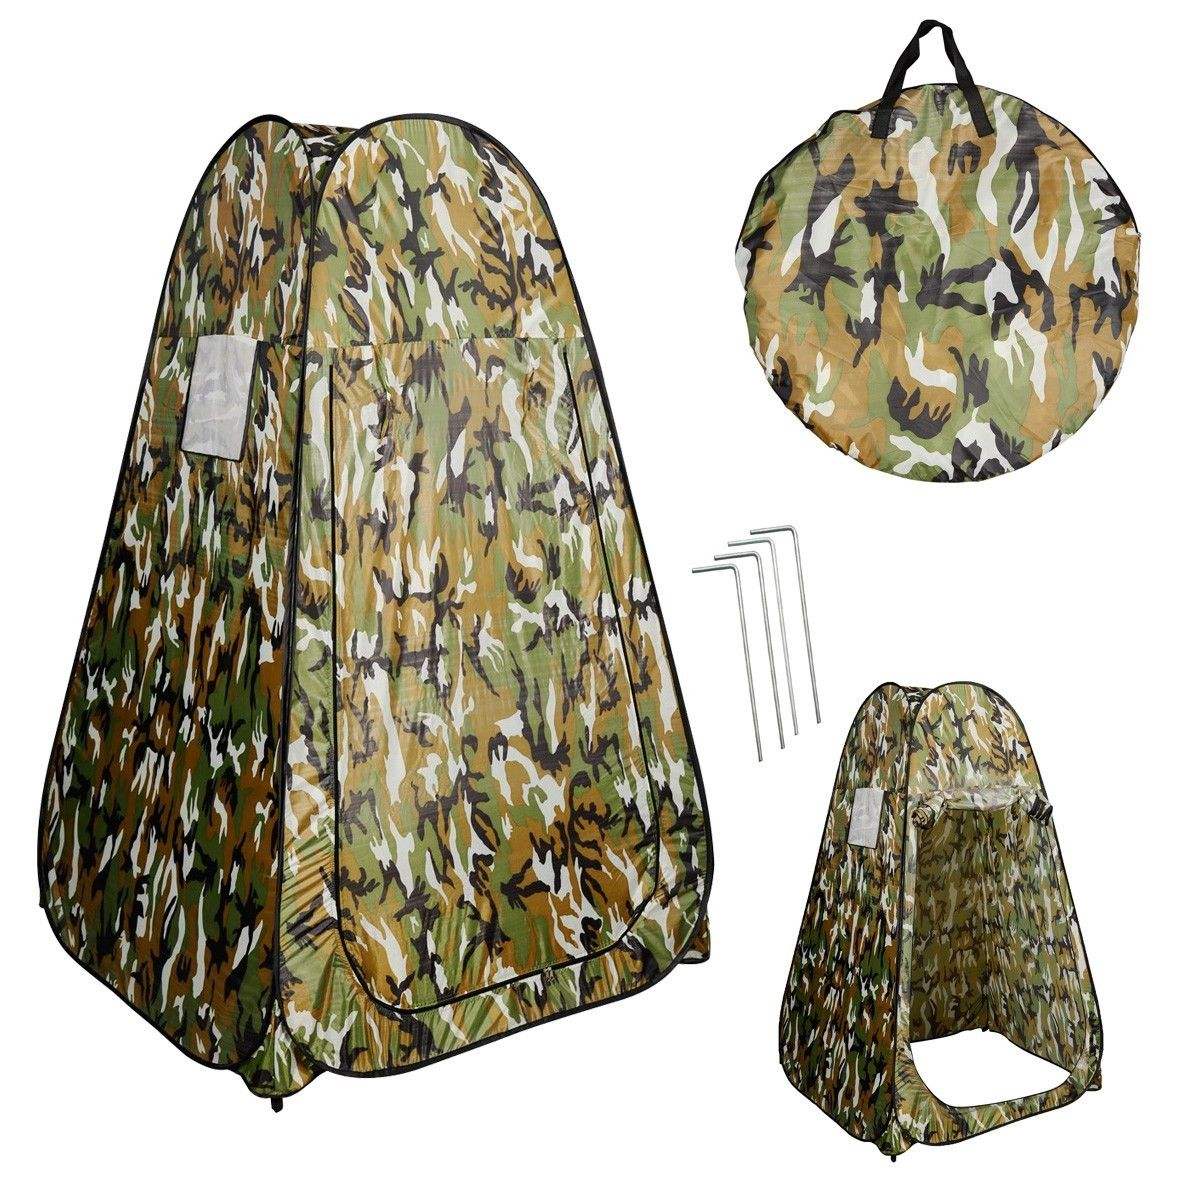 costway portable pop up fishing u0026 bathing toilet changing tent camping room camouflage